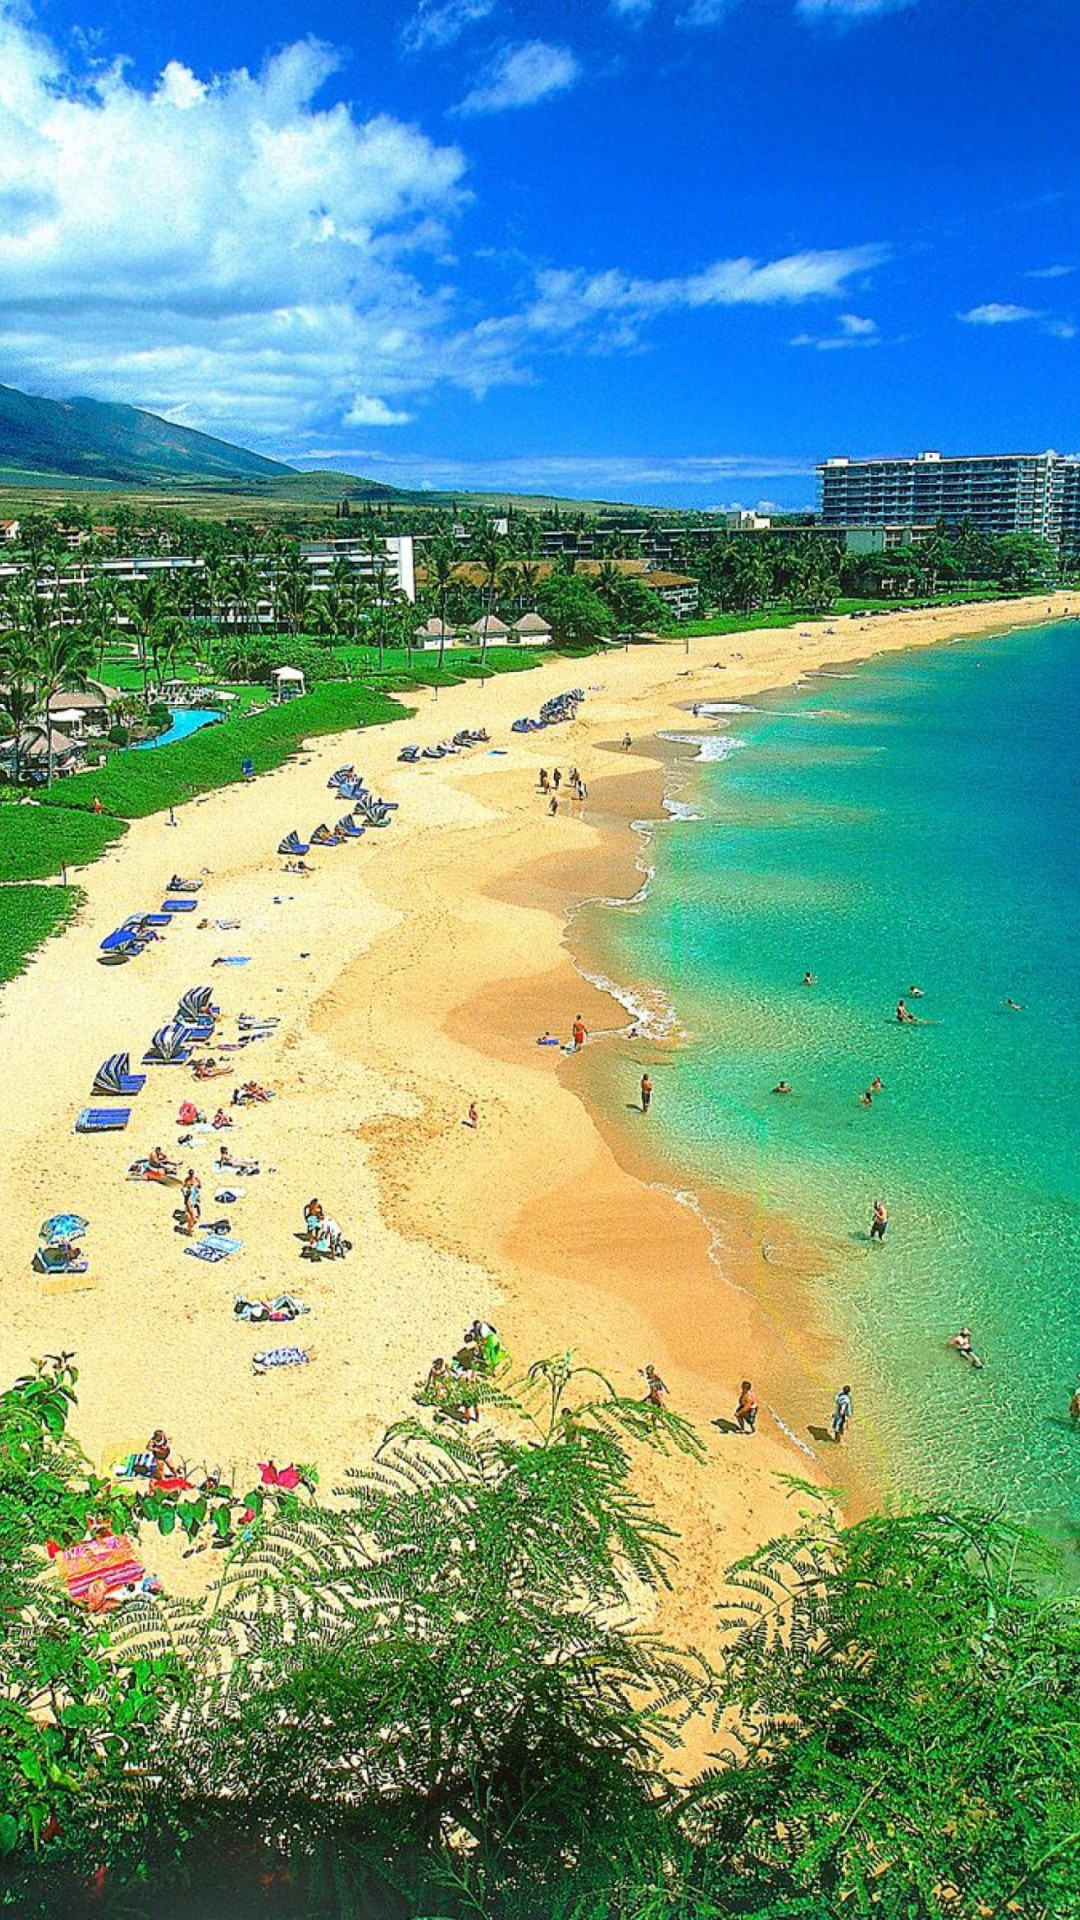 Backgrounds Kaanapali Beach Maui Hawaii For Iphone Plus Full Hd Pics  Wallpaper Mobile